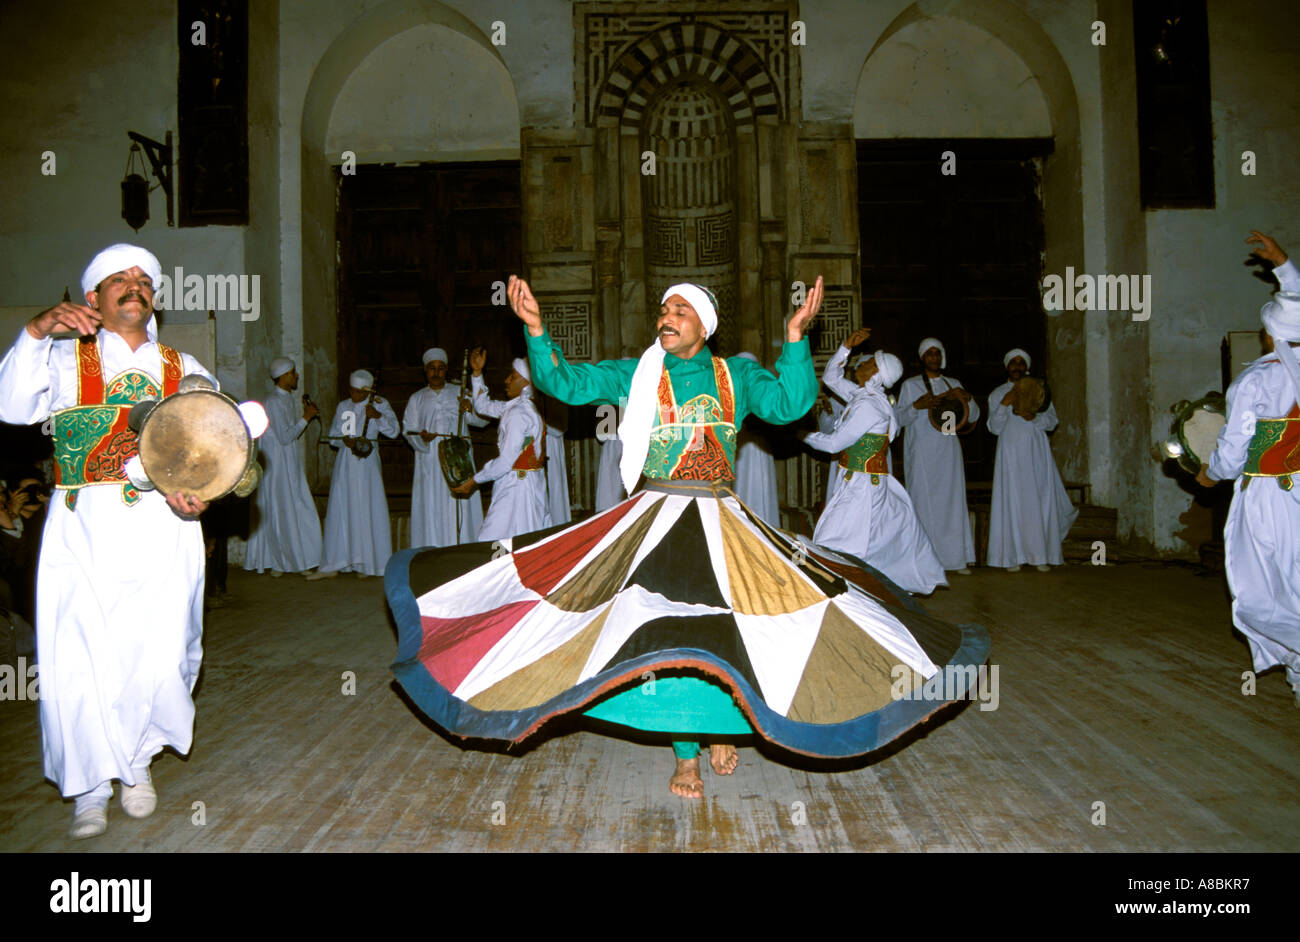 Egypt Cairo Whirling dervish dancers - Stock Image